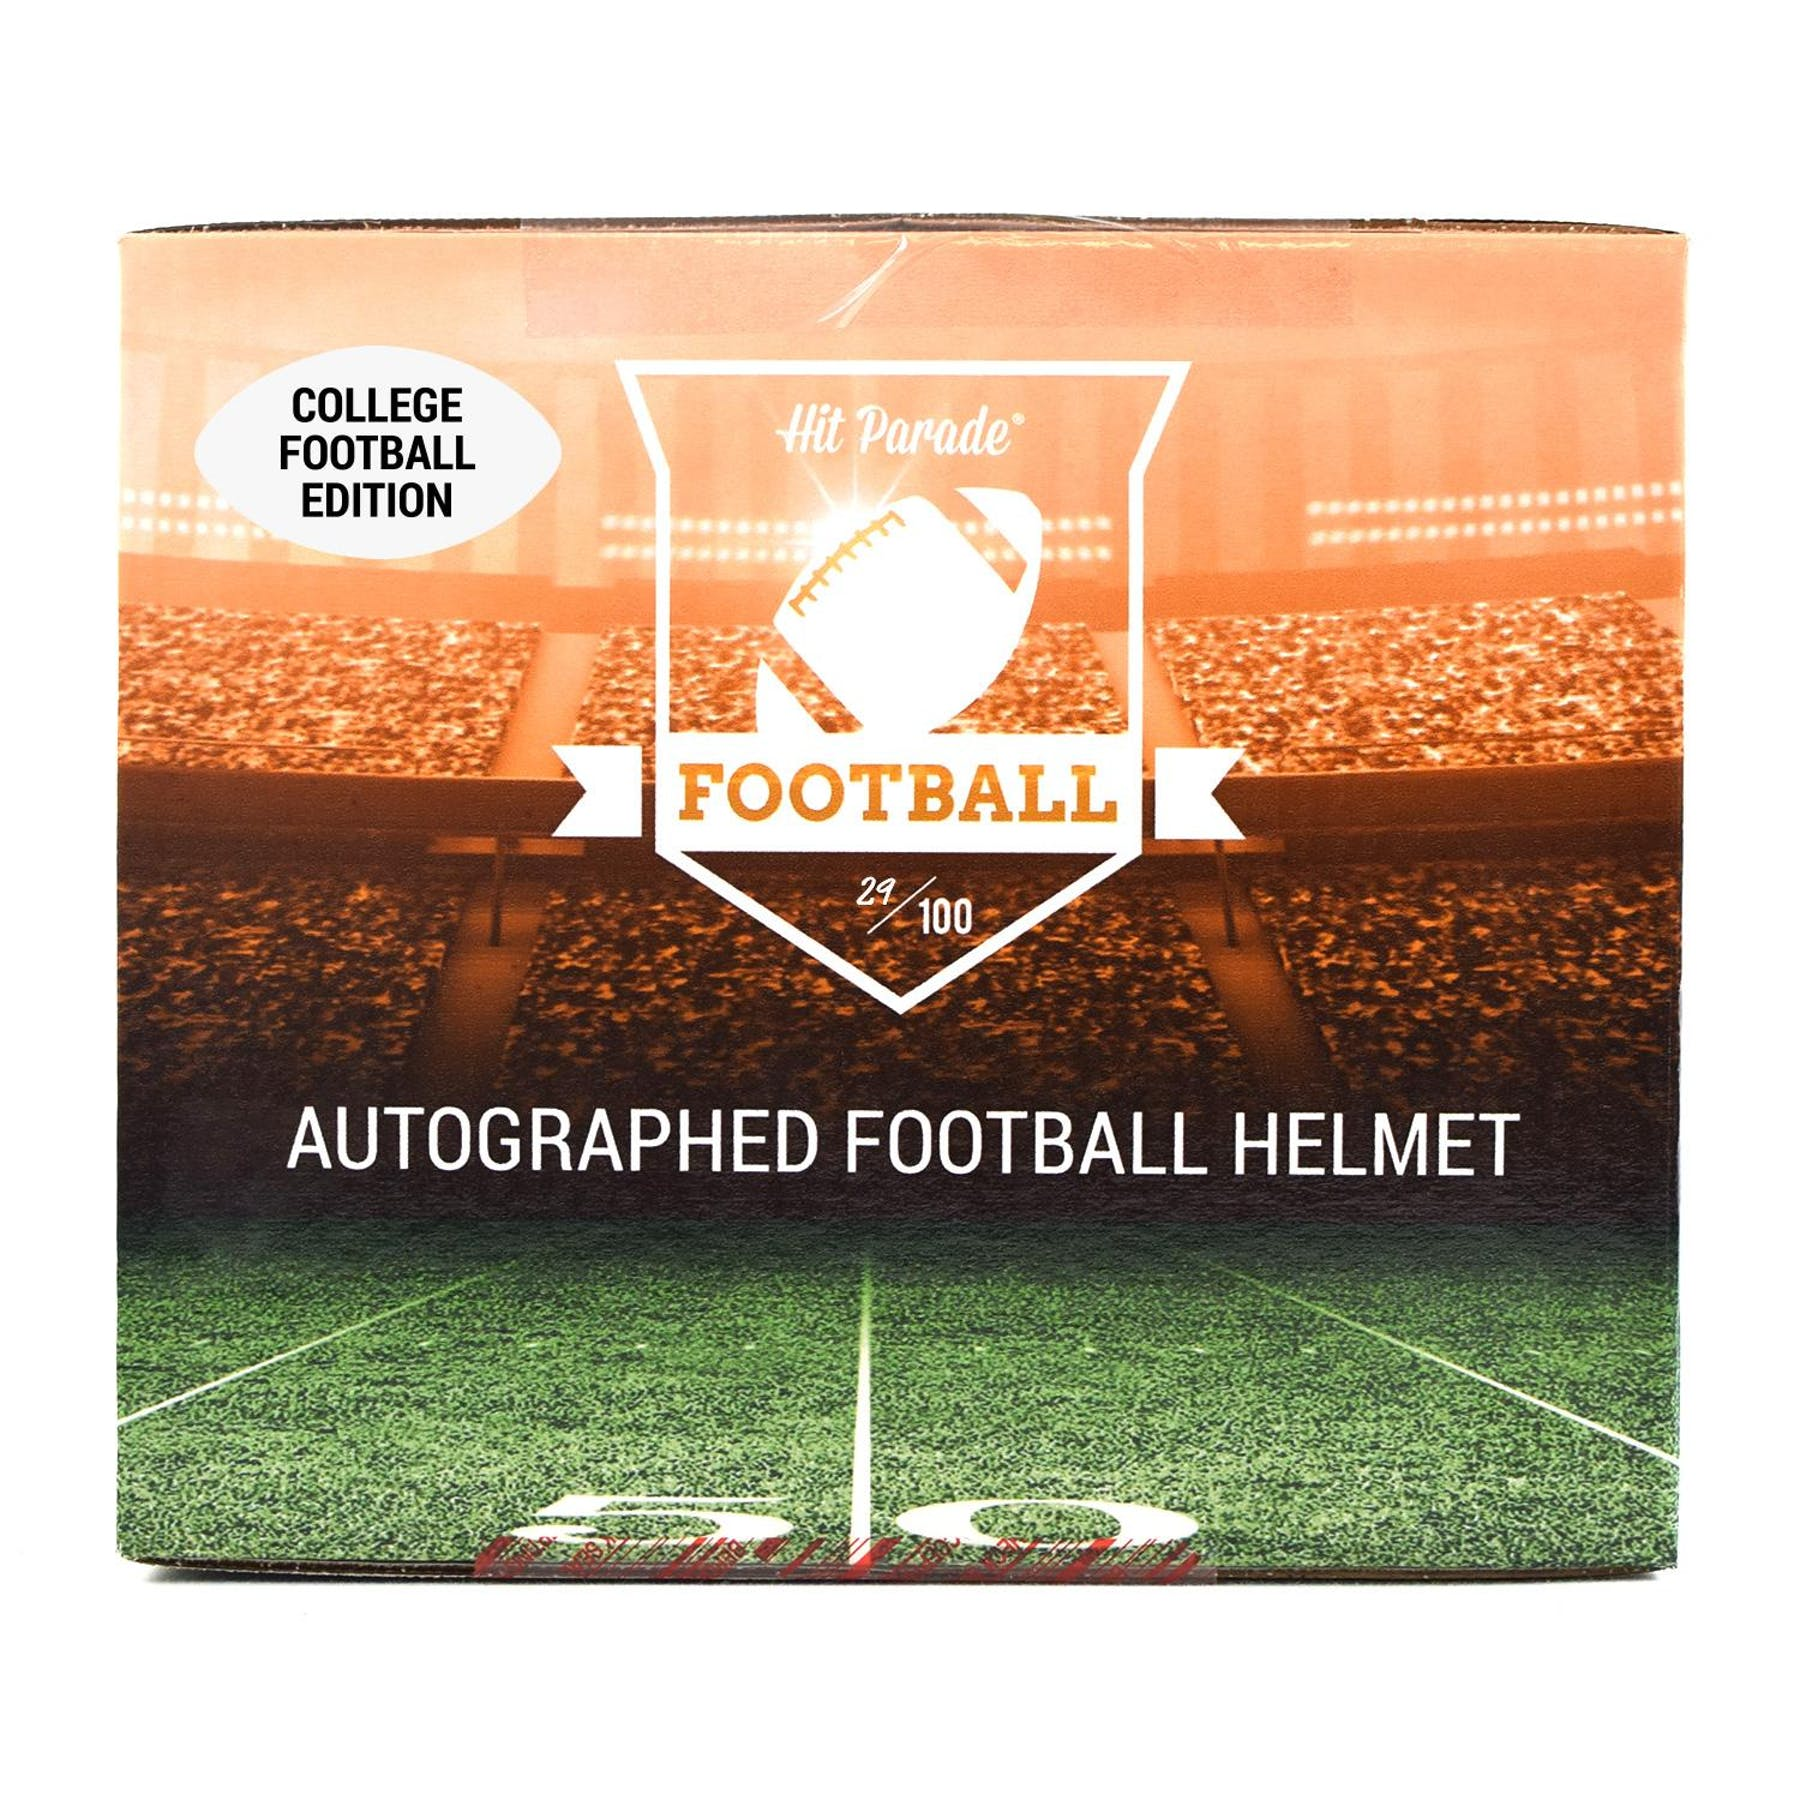 d1aed3ce1a6 2018 Hit Parade Autographed Full Size College Football Helmet Hobby Box -  Series 7 - B. Favre & Baker Mayfield | DA Card World